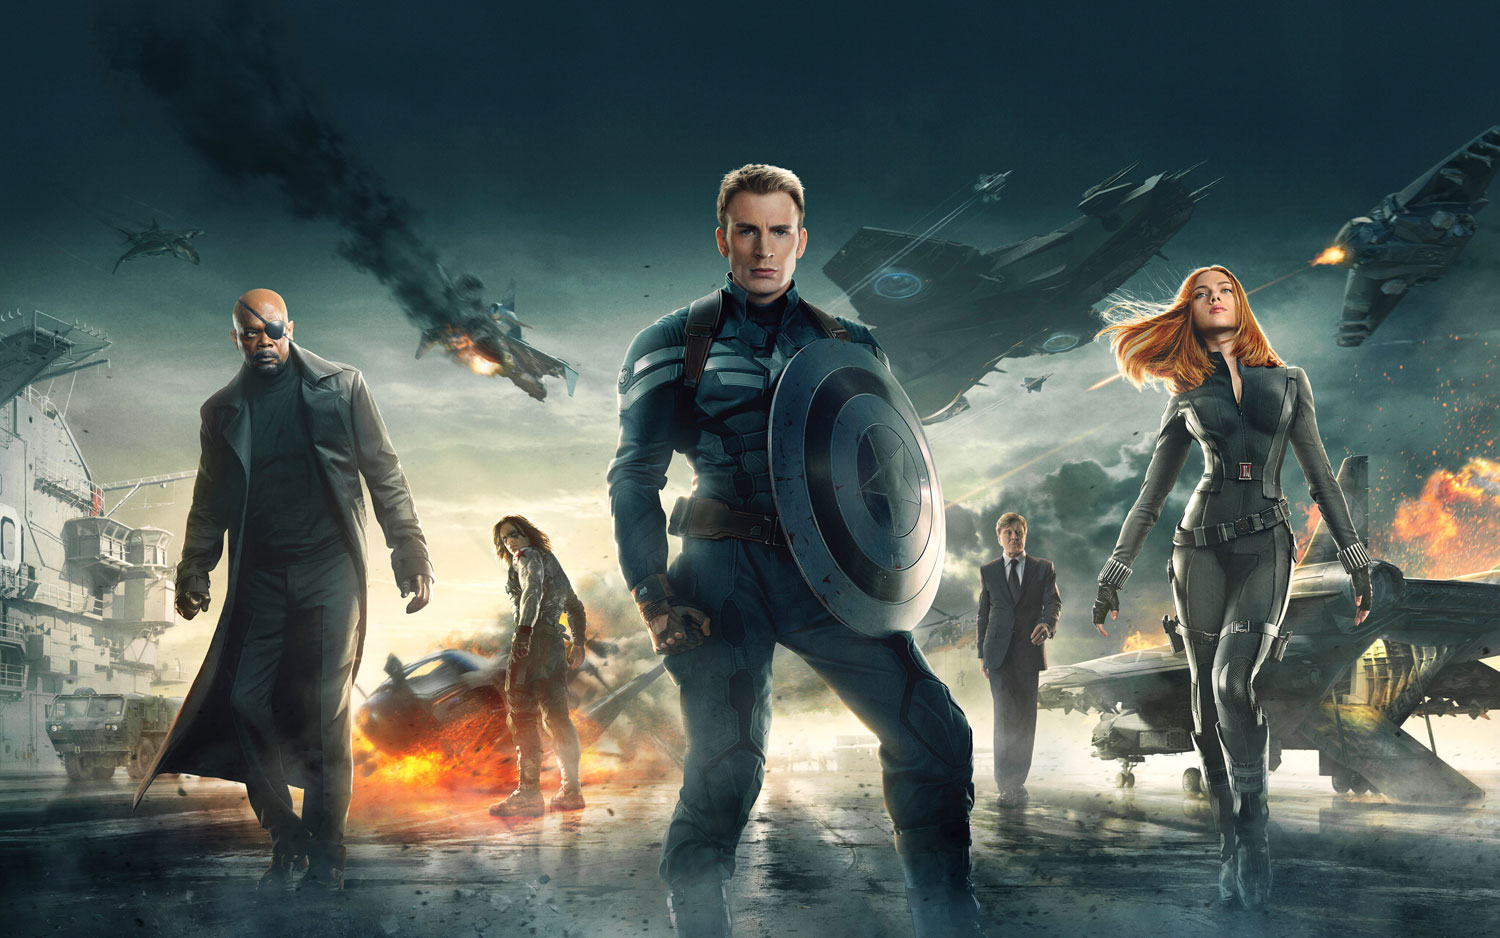 Chris Evans stars as Captain America in this fan favorite film. Better than the first film in the series, Captain America teams up with Black Widow in order to take on the assassin known as the Winter Soldier. With a good conspiracy theory in the plot and good action sequences, Captain America: The Winter Soldier […]